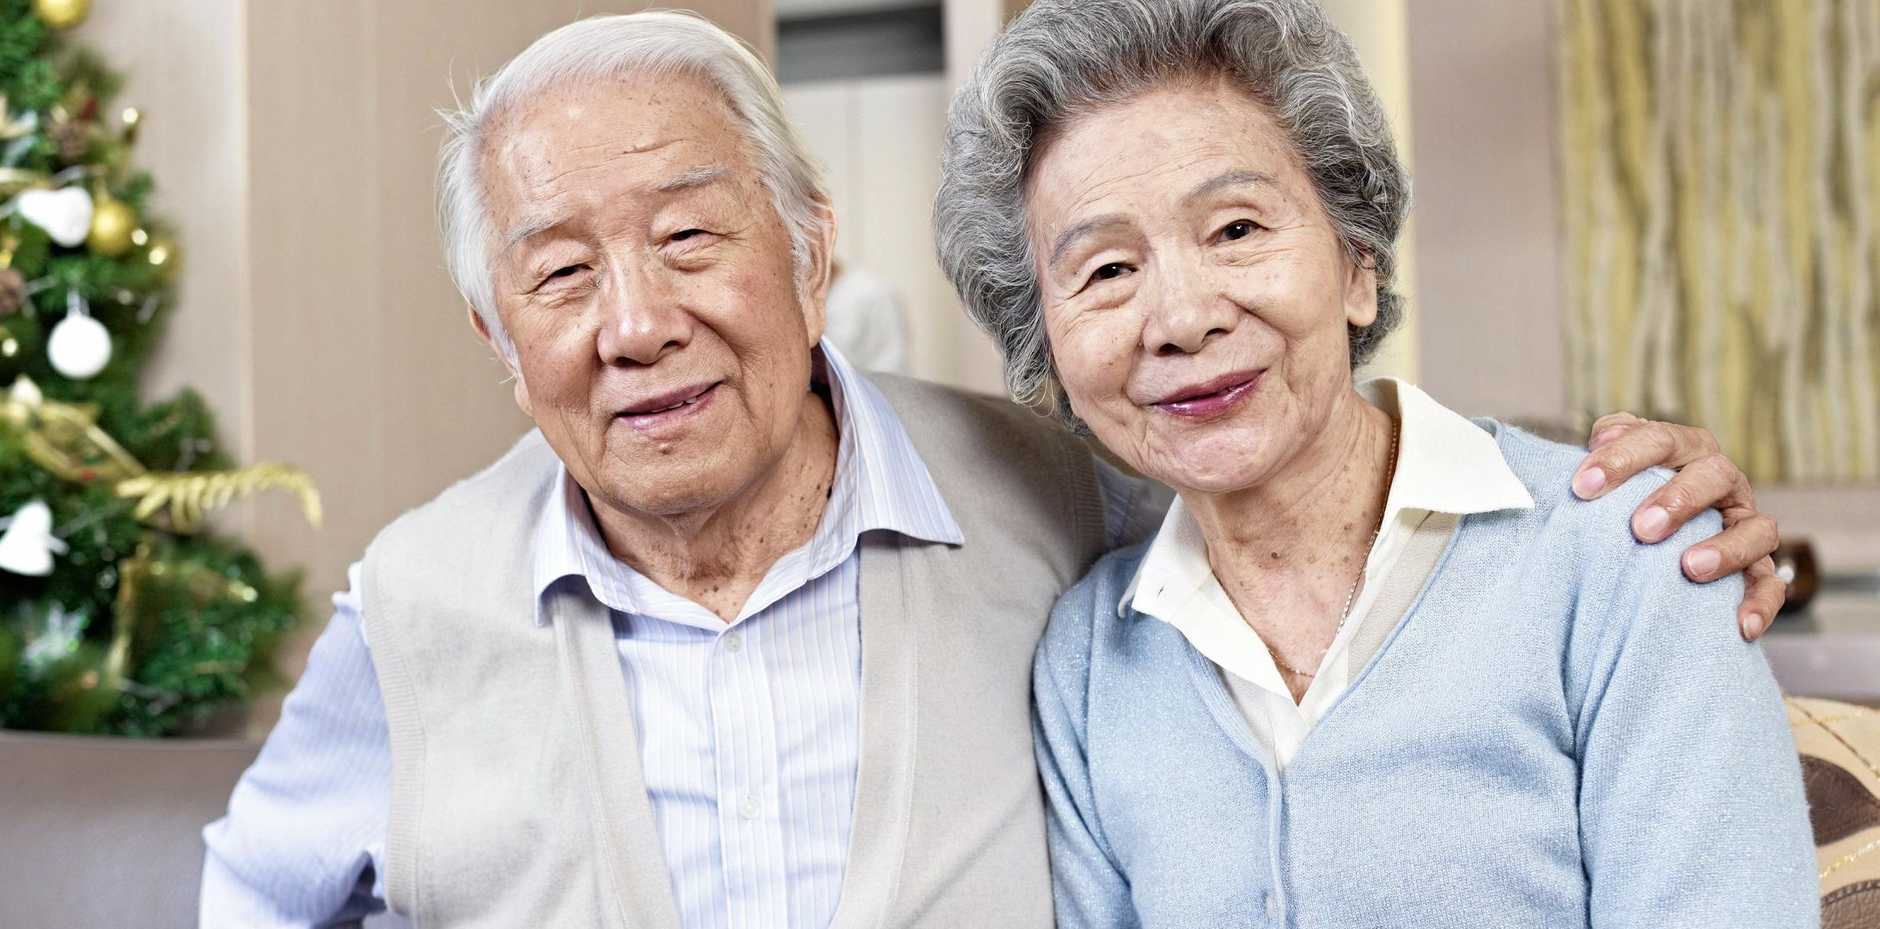 With an above average population of over 65s, Akita in Japan has turned to its citizens and companies to develop and develop an Age Friendly city approach.